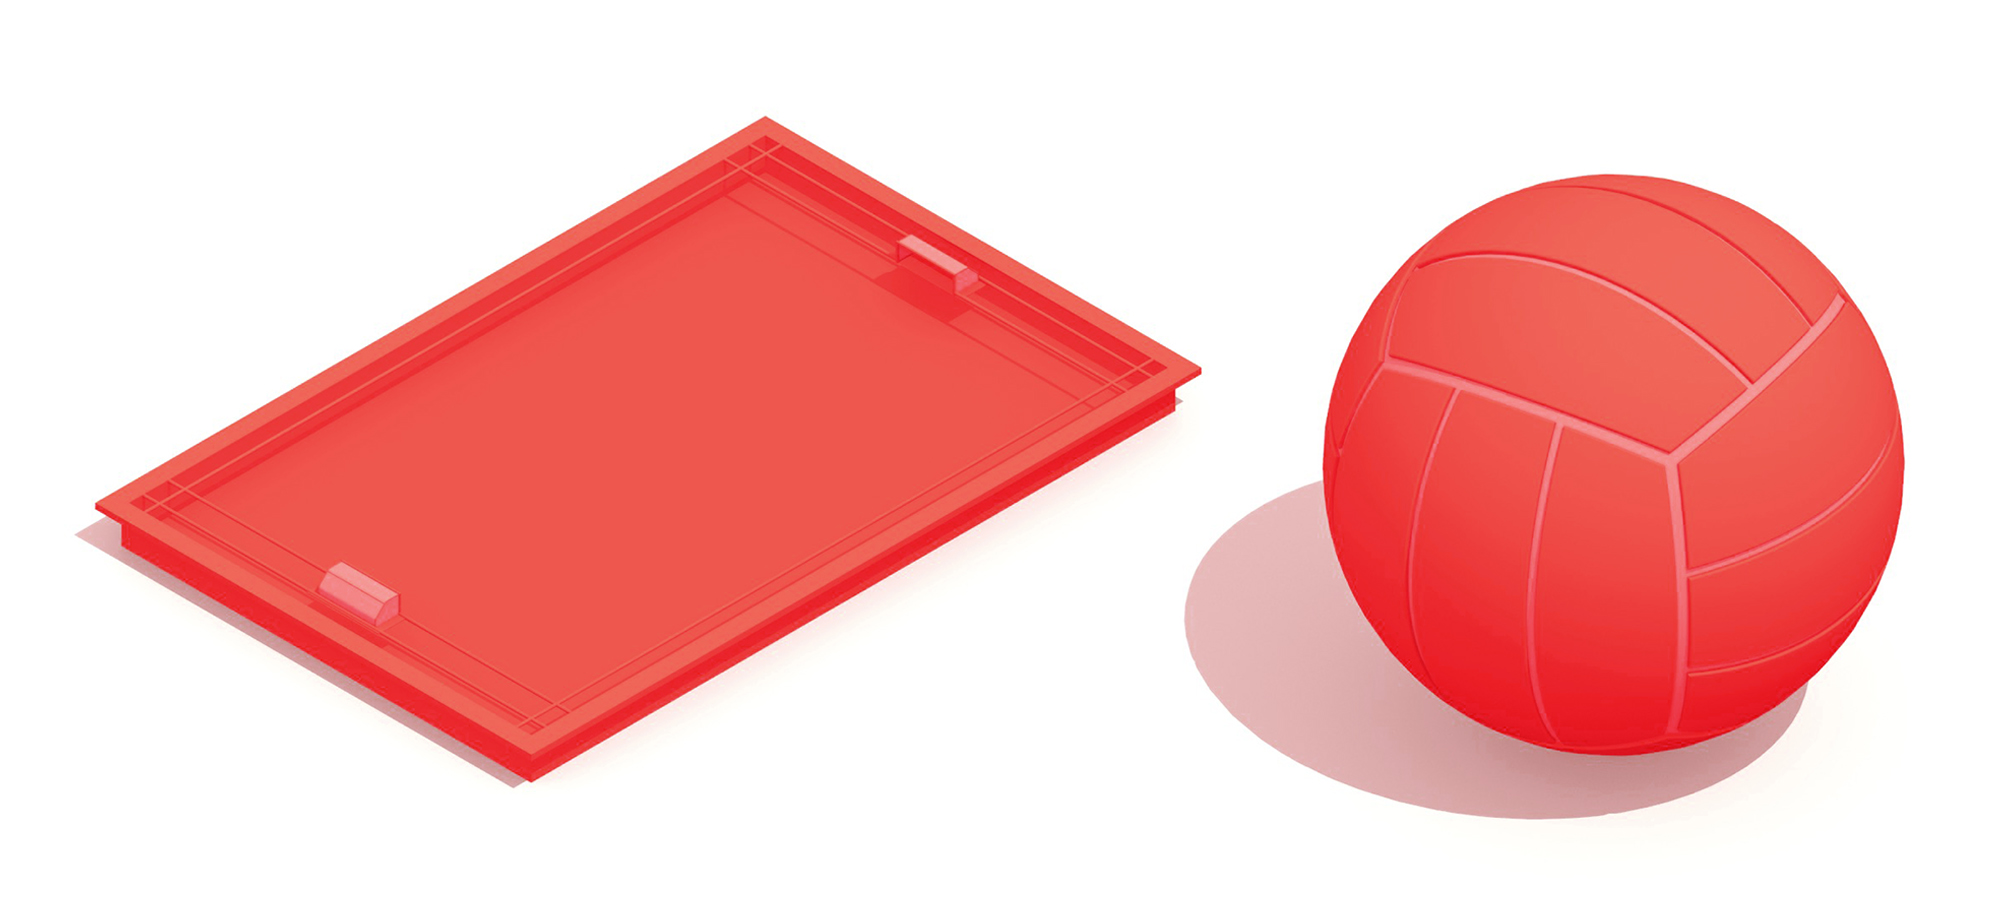 Pair of 3D illustrations of a Water Polo Pool and Water Polo Ball